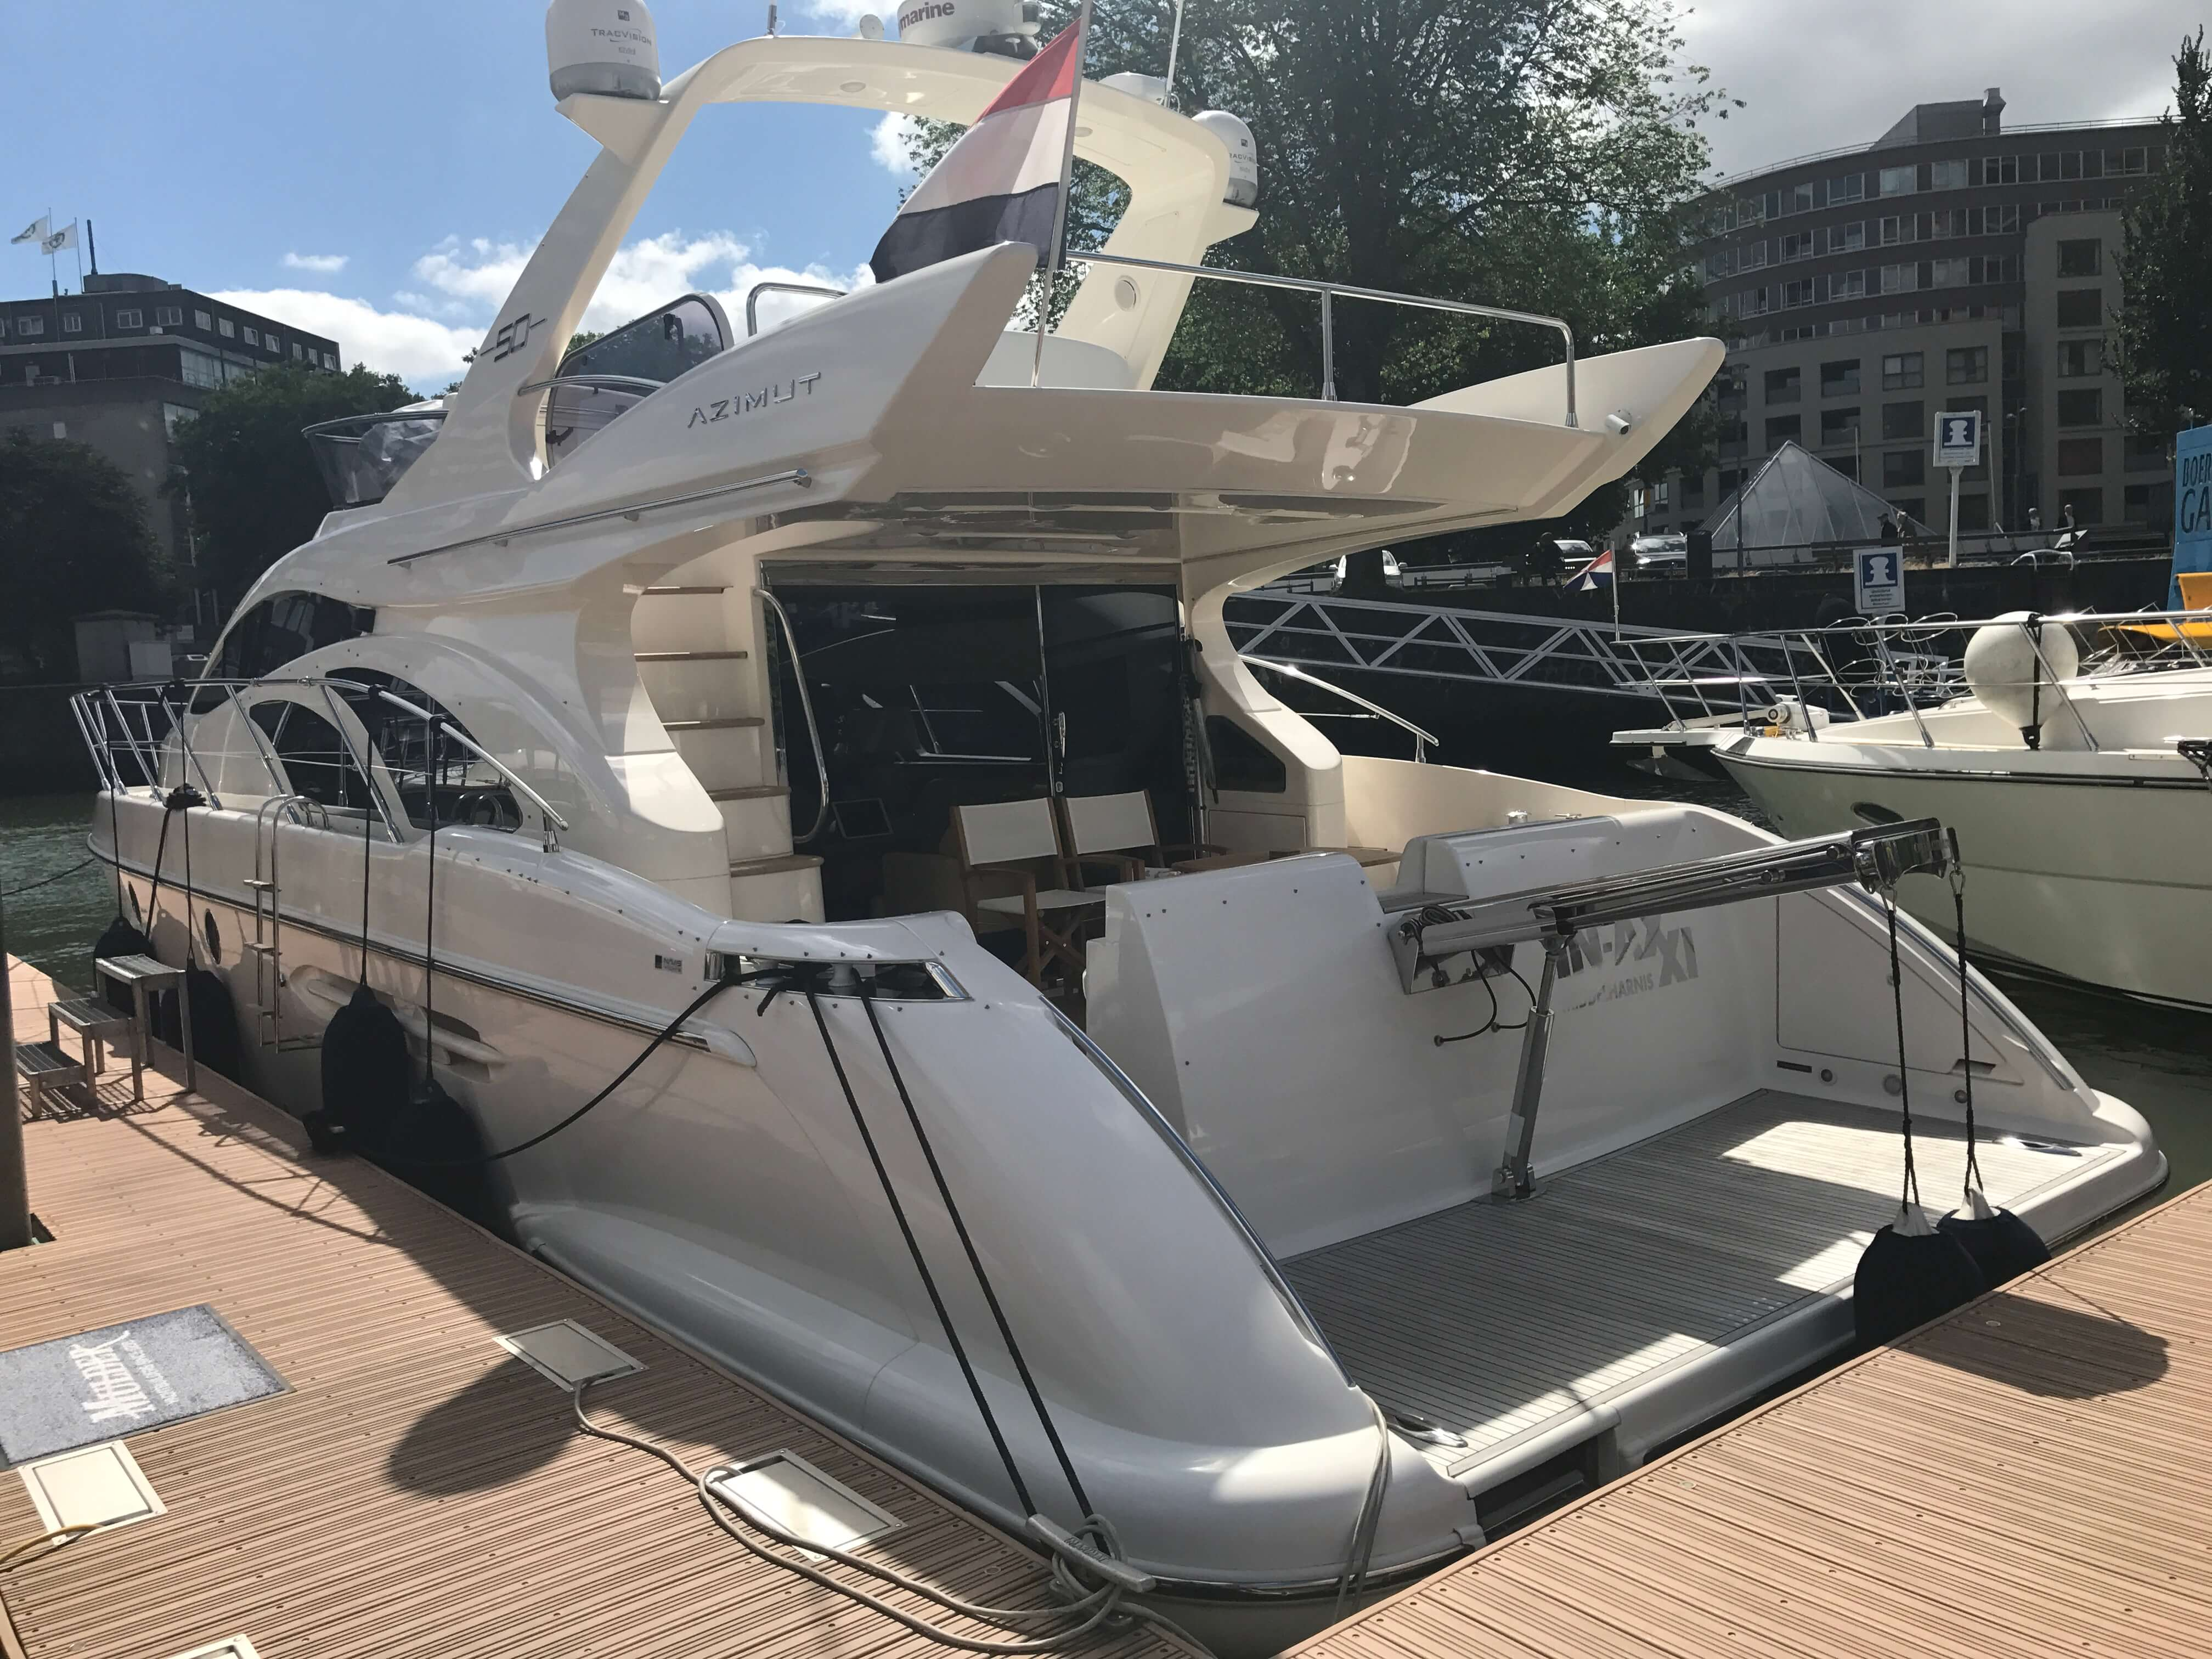 Azimut 50 FLY Nieuw inde vloot 2020 - 1